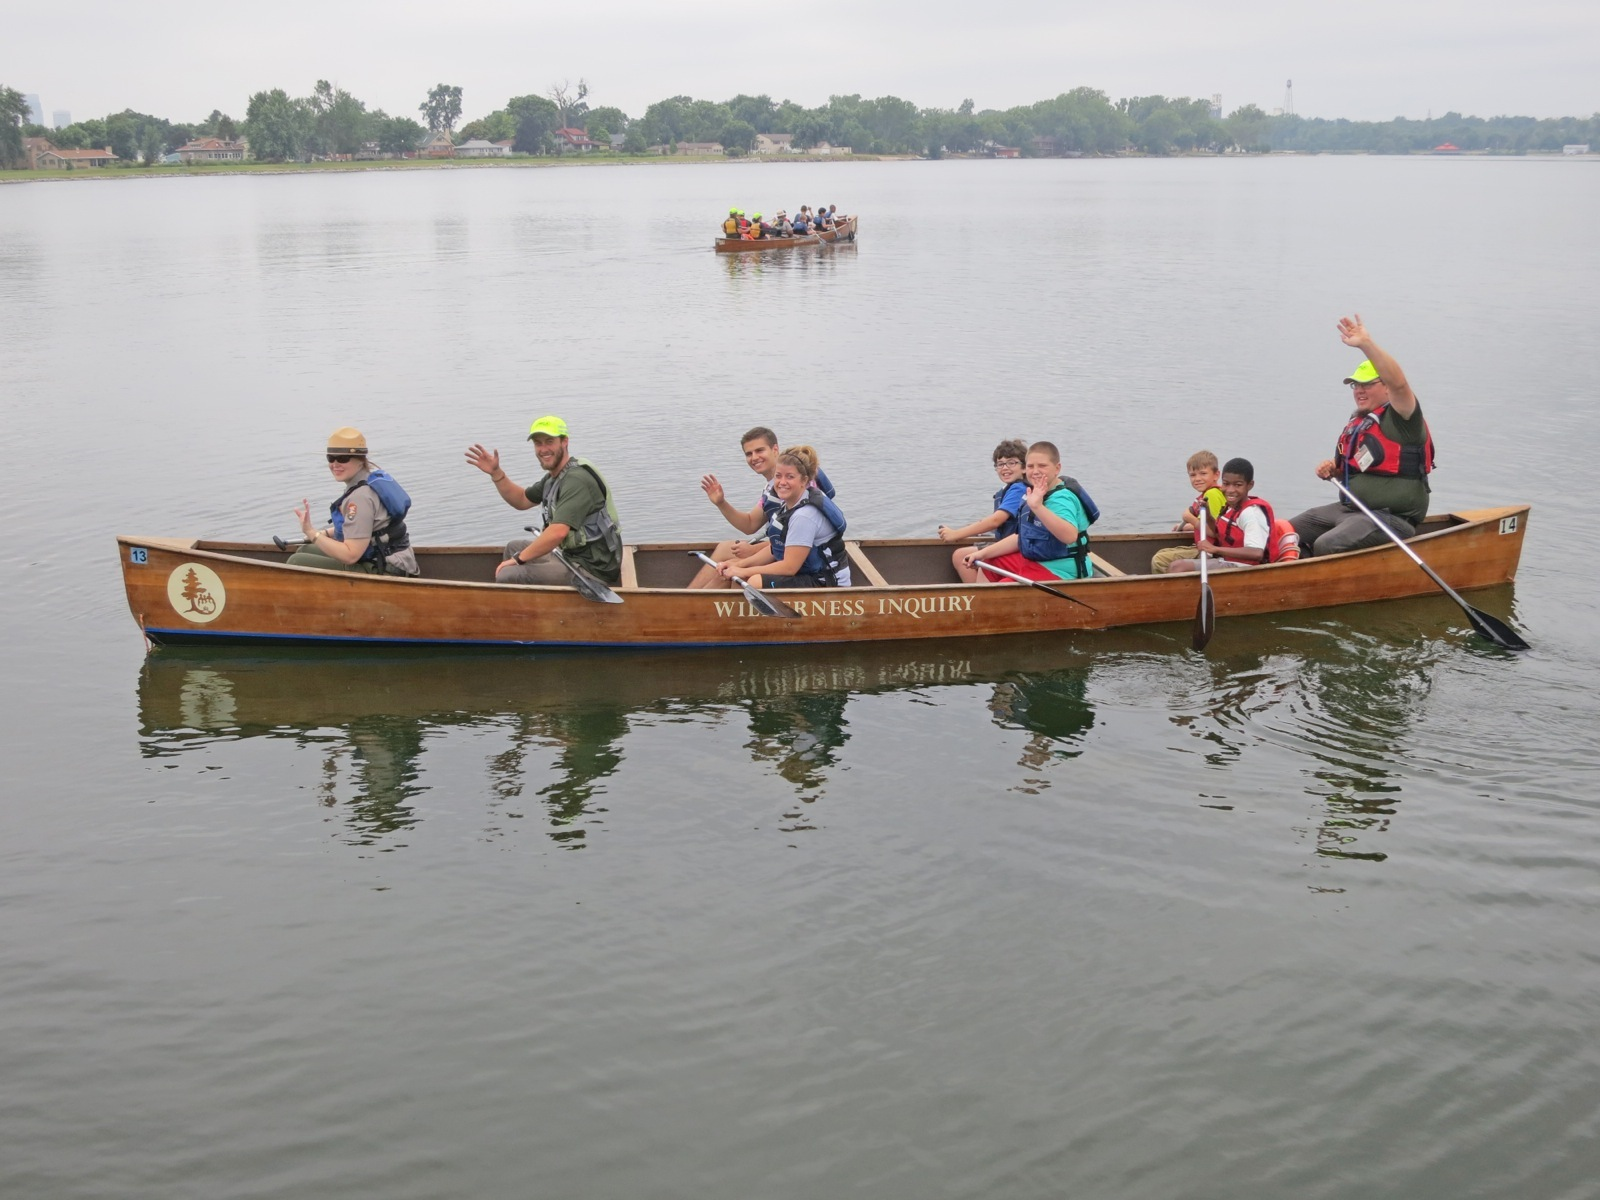 Canoemobile participants wave to camera while taking a break from paddling the canoe in Omaha